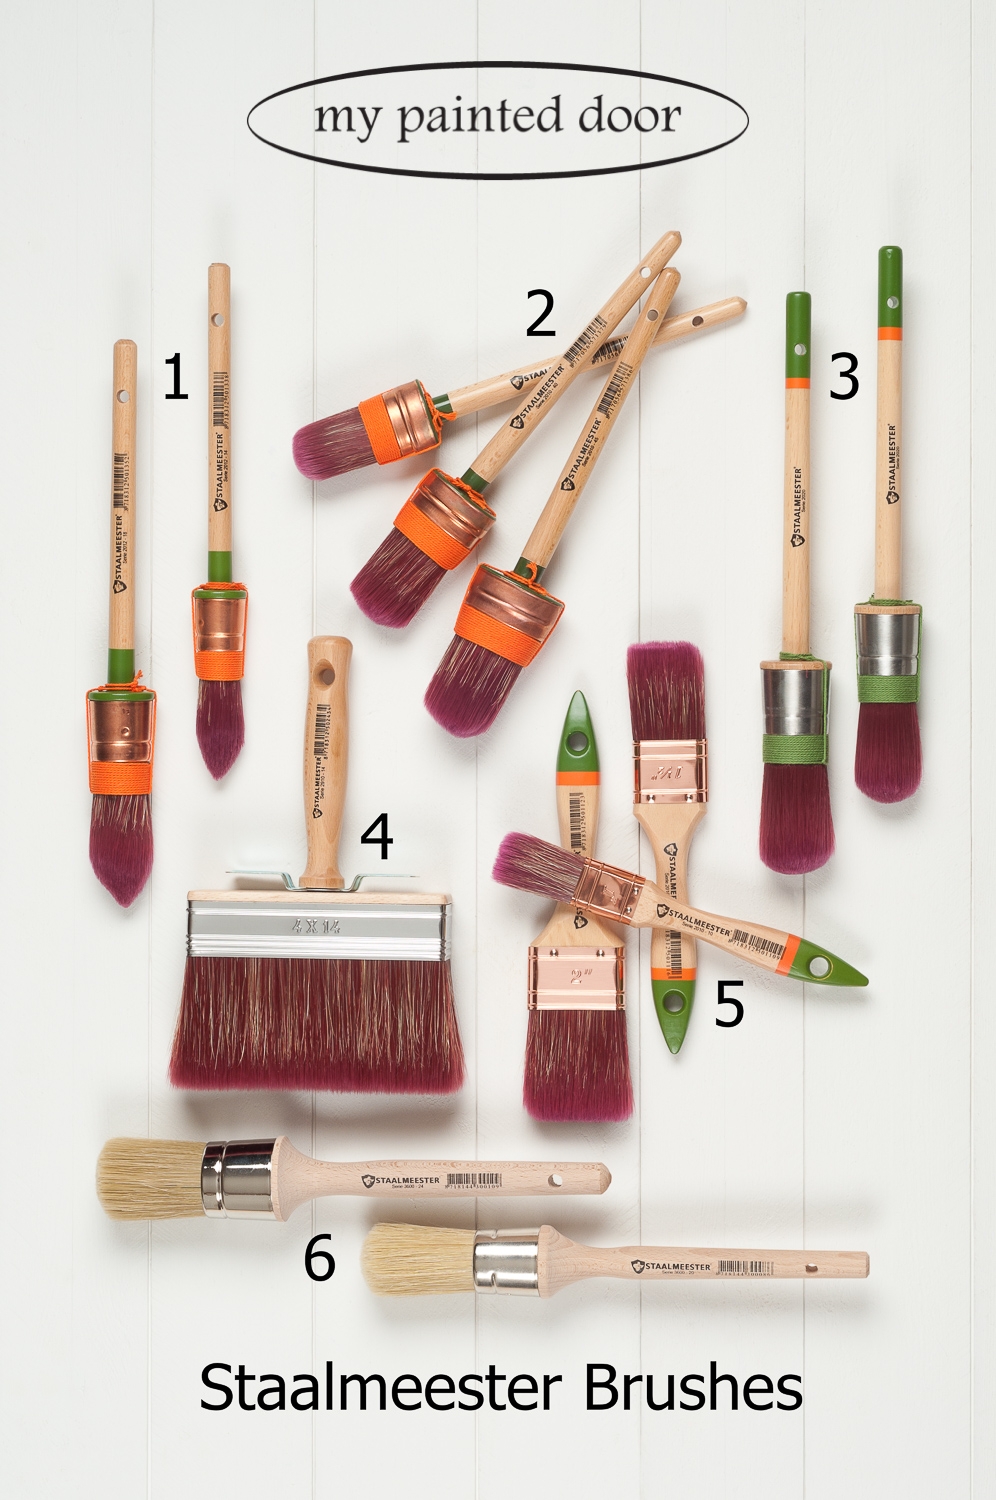 Staalmeester Brushes are perfect for furniture painting!